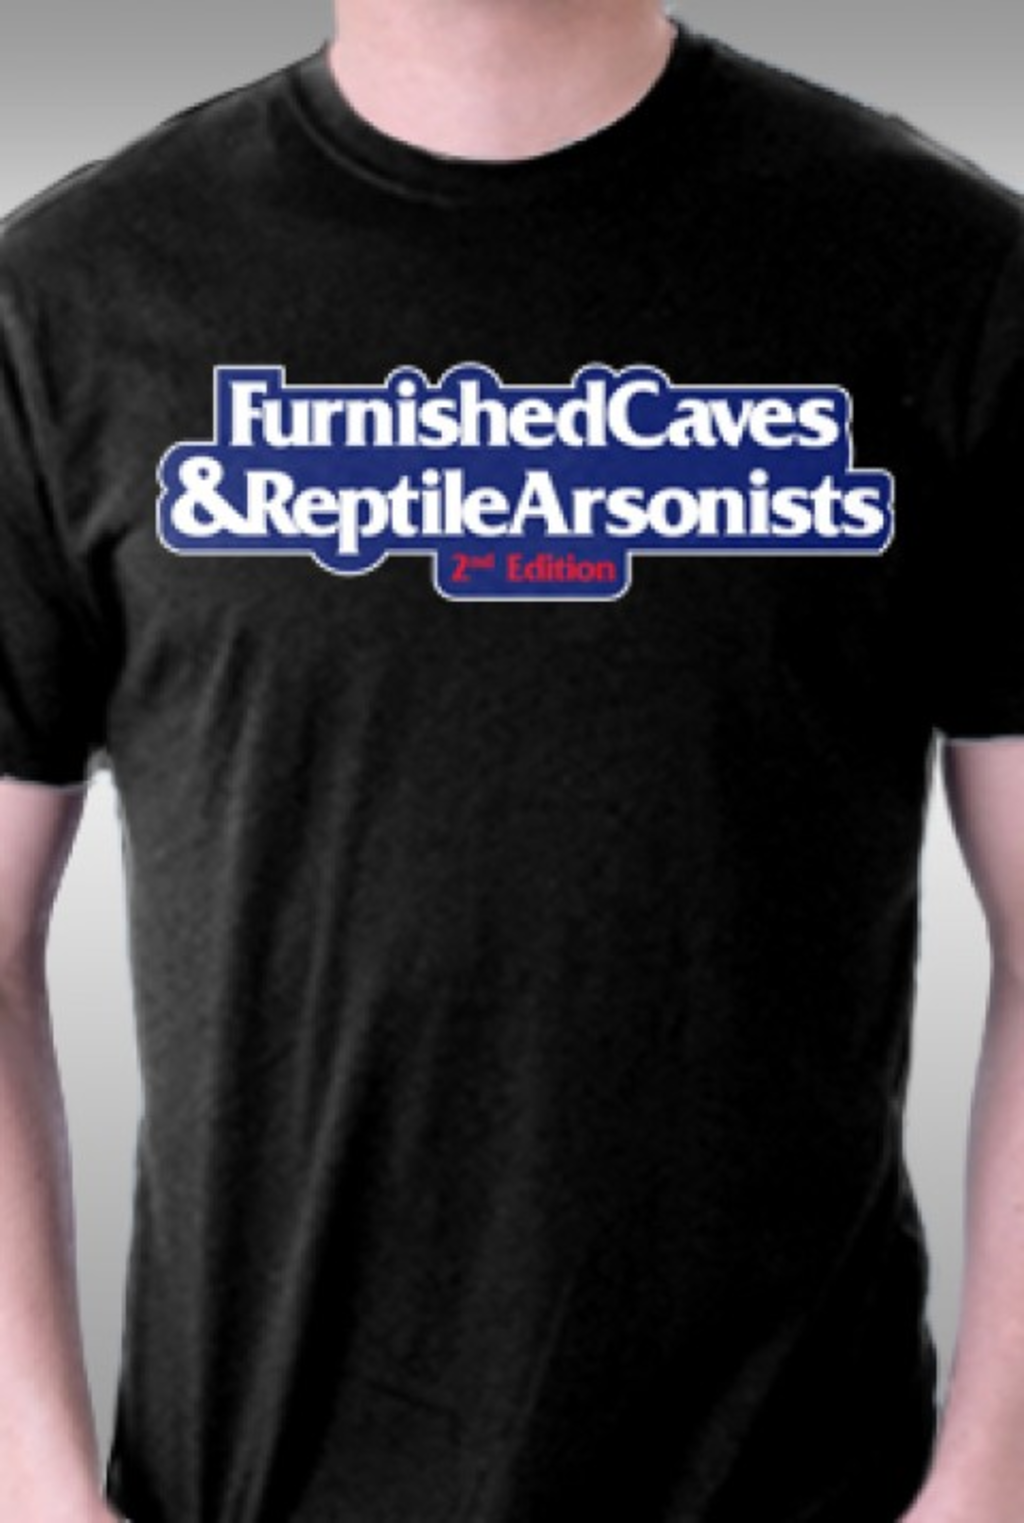 TeeFury: Furnished Caves & Reptile Arsonists